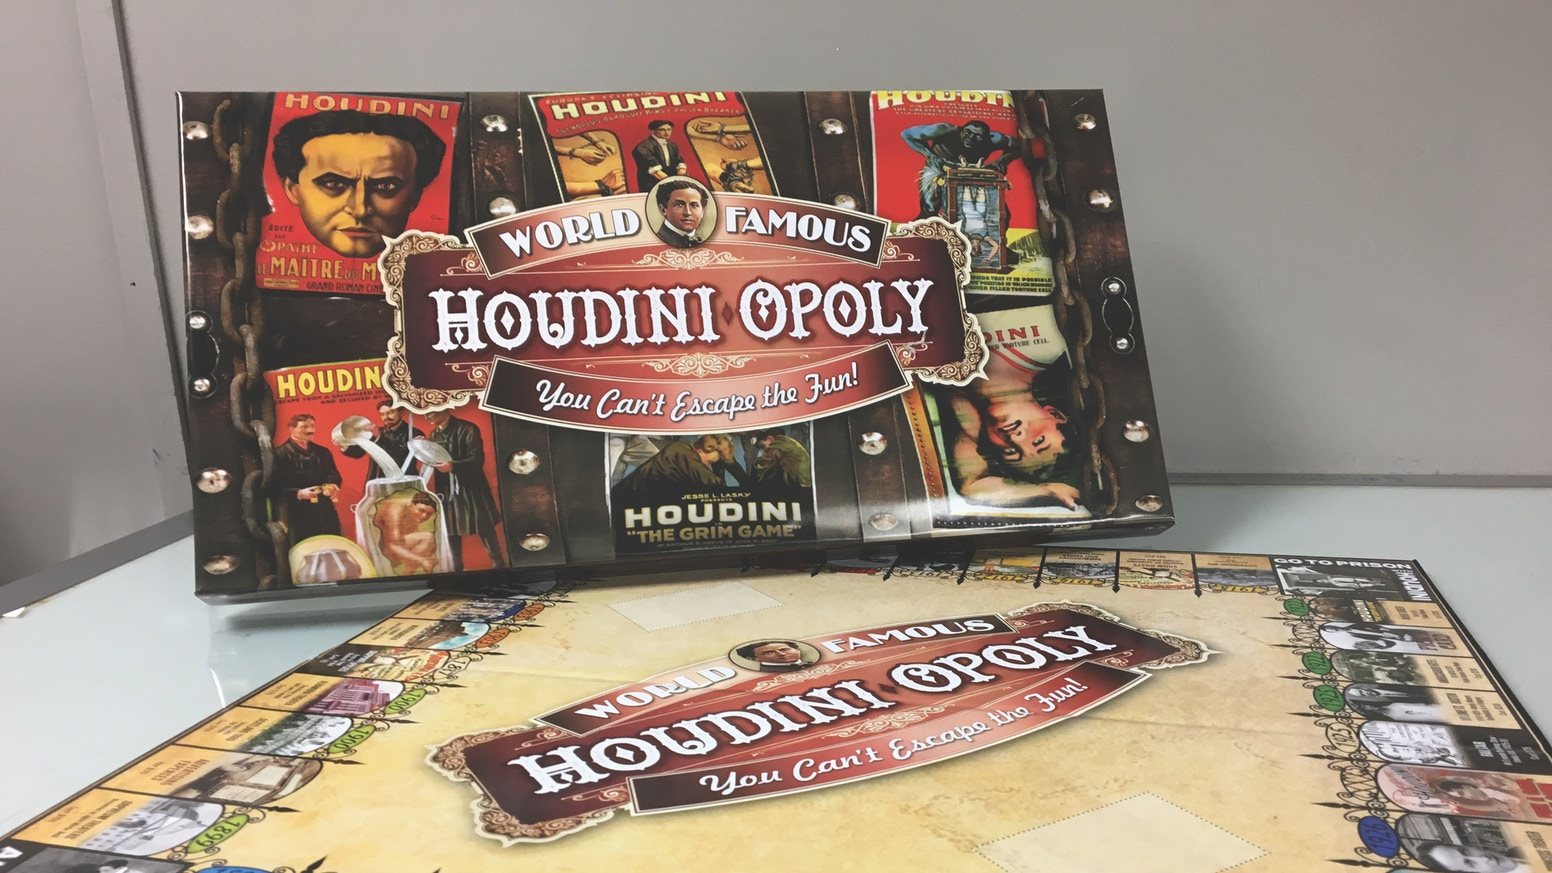 Exciting fun educational game. One of World's great legends & heros. Highest funded-most backed KS in SCRANTON history. 2nd highest funded Houdini project in KS. Stretch goal pawns sent out. Games soon to be shipped. Address labels being printed